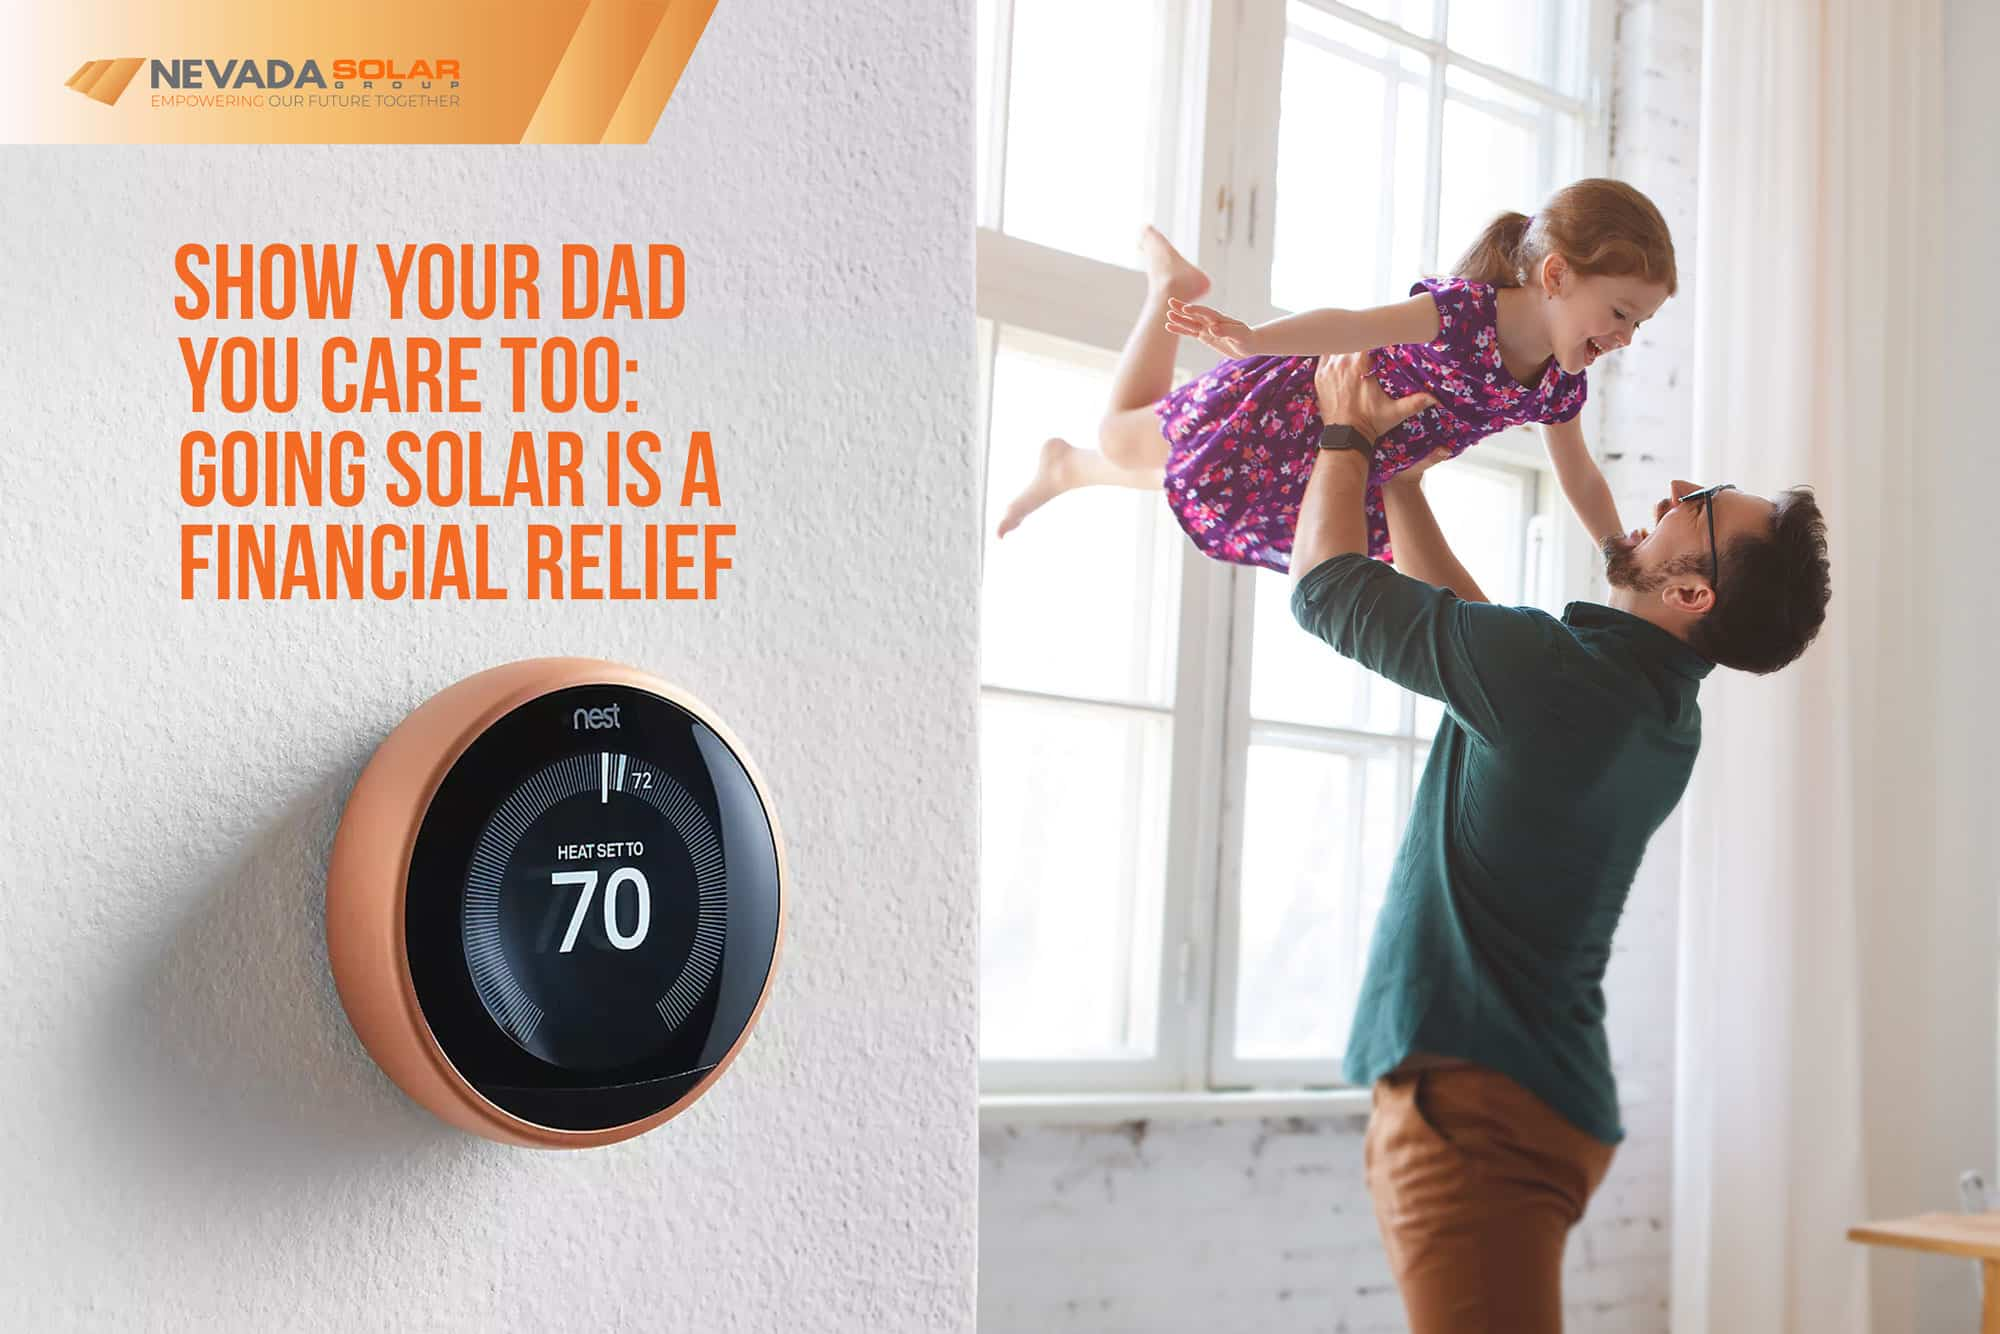 Nest-Thermostat-On-The-Wall-Of-The-House